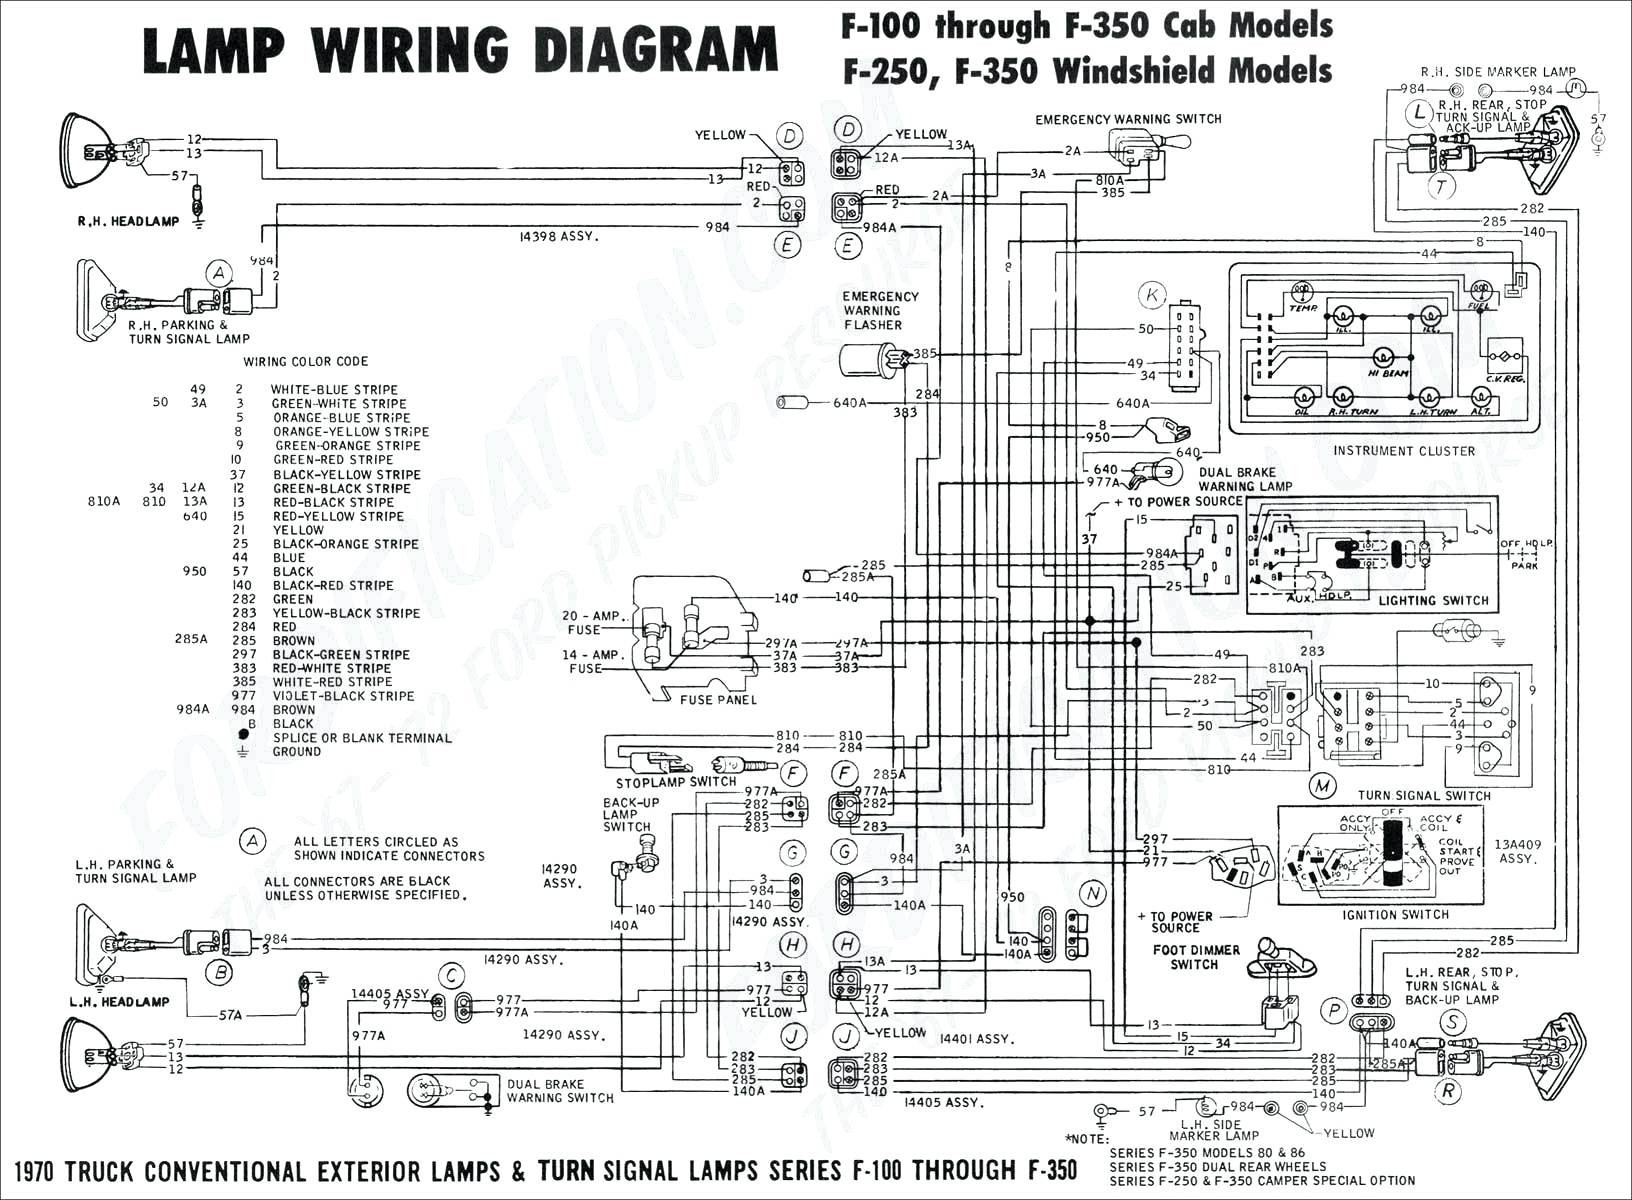 2006 Saturn Ion Engine Diagram E4od Fluid Diagram Experts Wiring Diagram • Of 2006 Saturn Ion Engine Diagram How to Wire An Electric Oven Diagram 2018 Wiring Diagram Electric